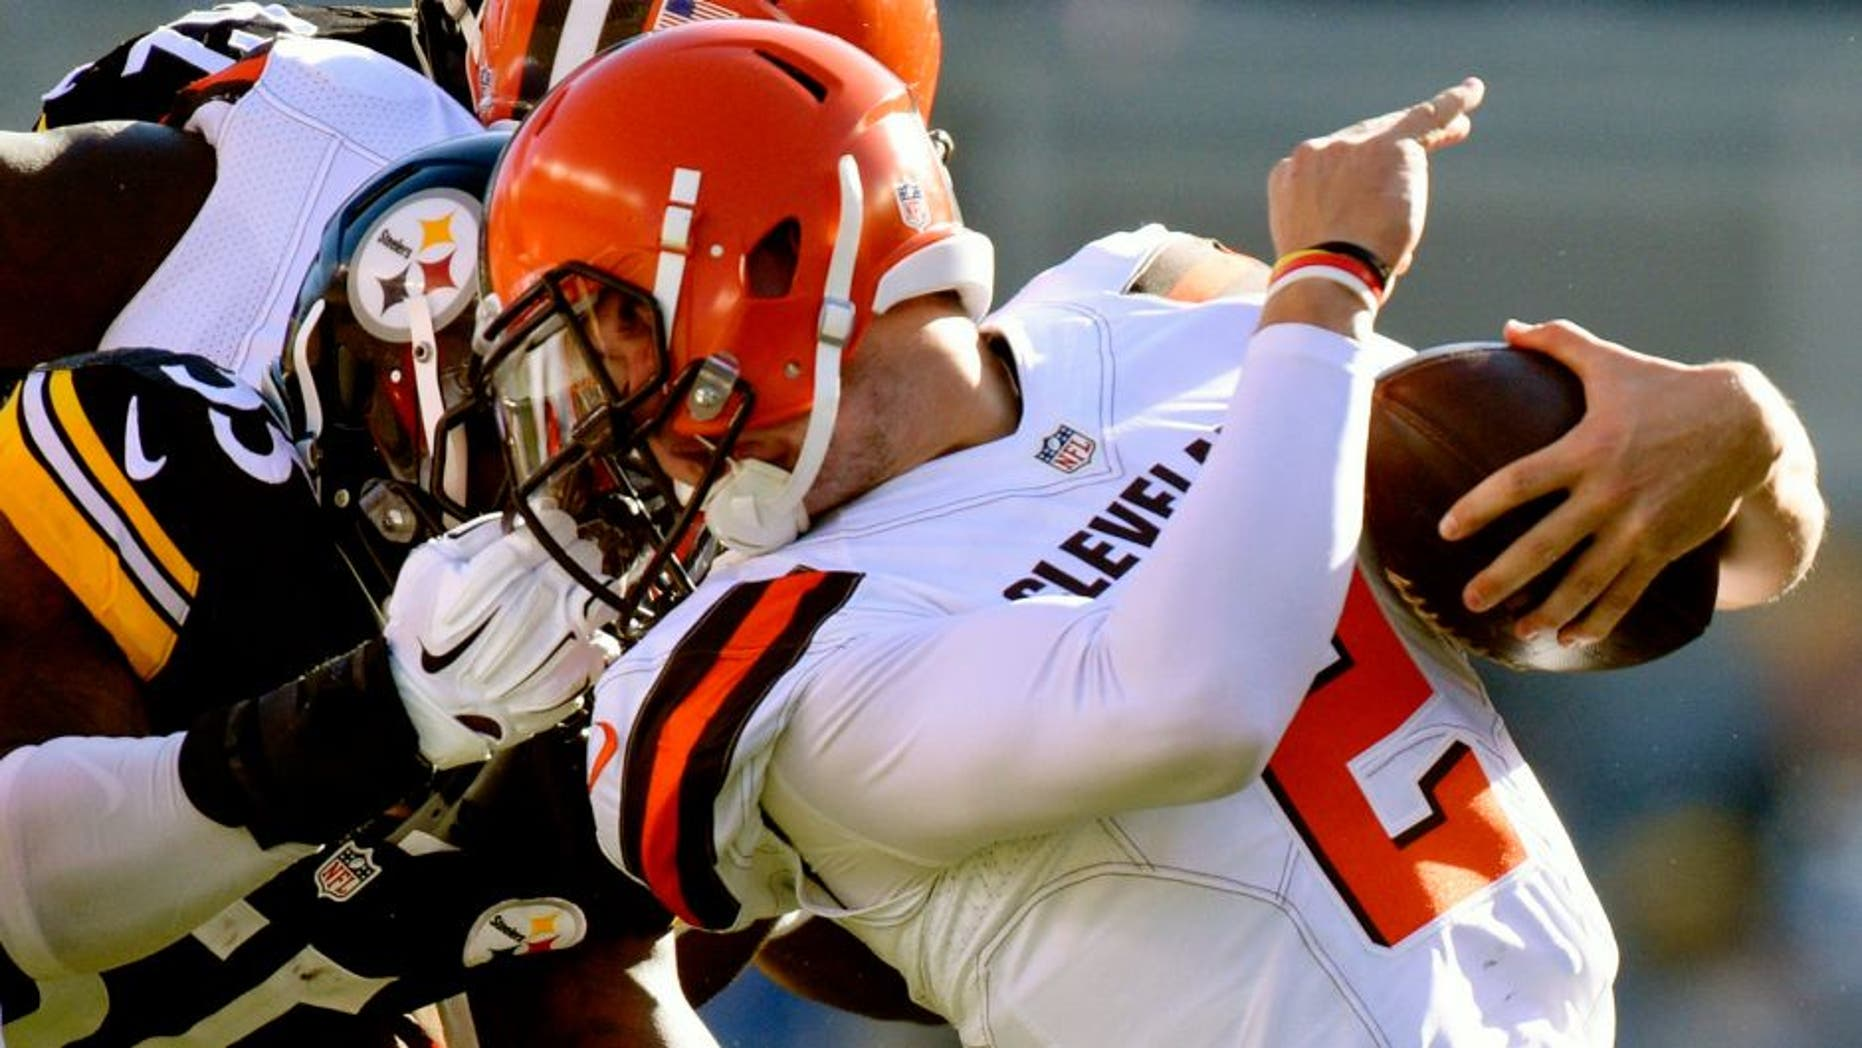 Cleveland Browns quarterback Johnny Manziel (2) is tackled by the face mask by Pittsburgh Steelers outside linebacker Arthur Moats (55) in the second quarter of an NFL football game, Sunday, Nov. 15, 2015, in Pittsburgh. Moats was penalized on the play. (AP Photo/Don Wright)